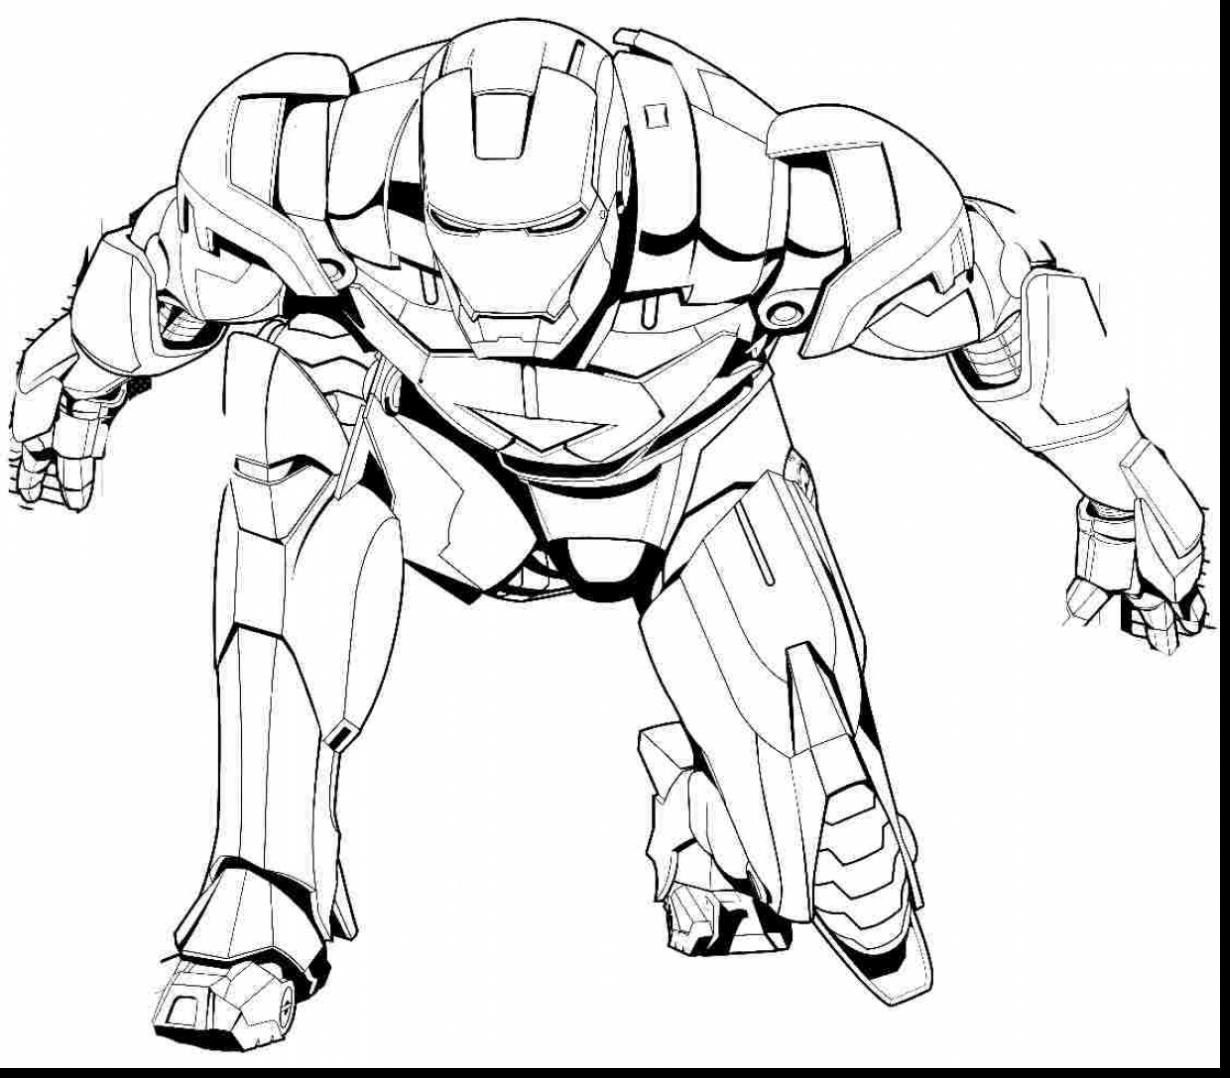 24 Brilliant Image Of Color Pages Online Davemelillo Com Superhero Coloring Pages Superhero Coloring Avengers Coloring Pages